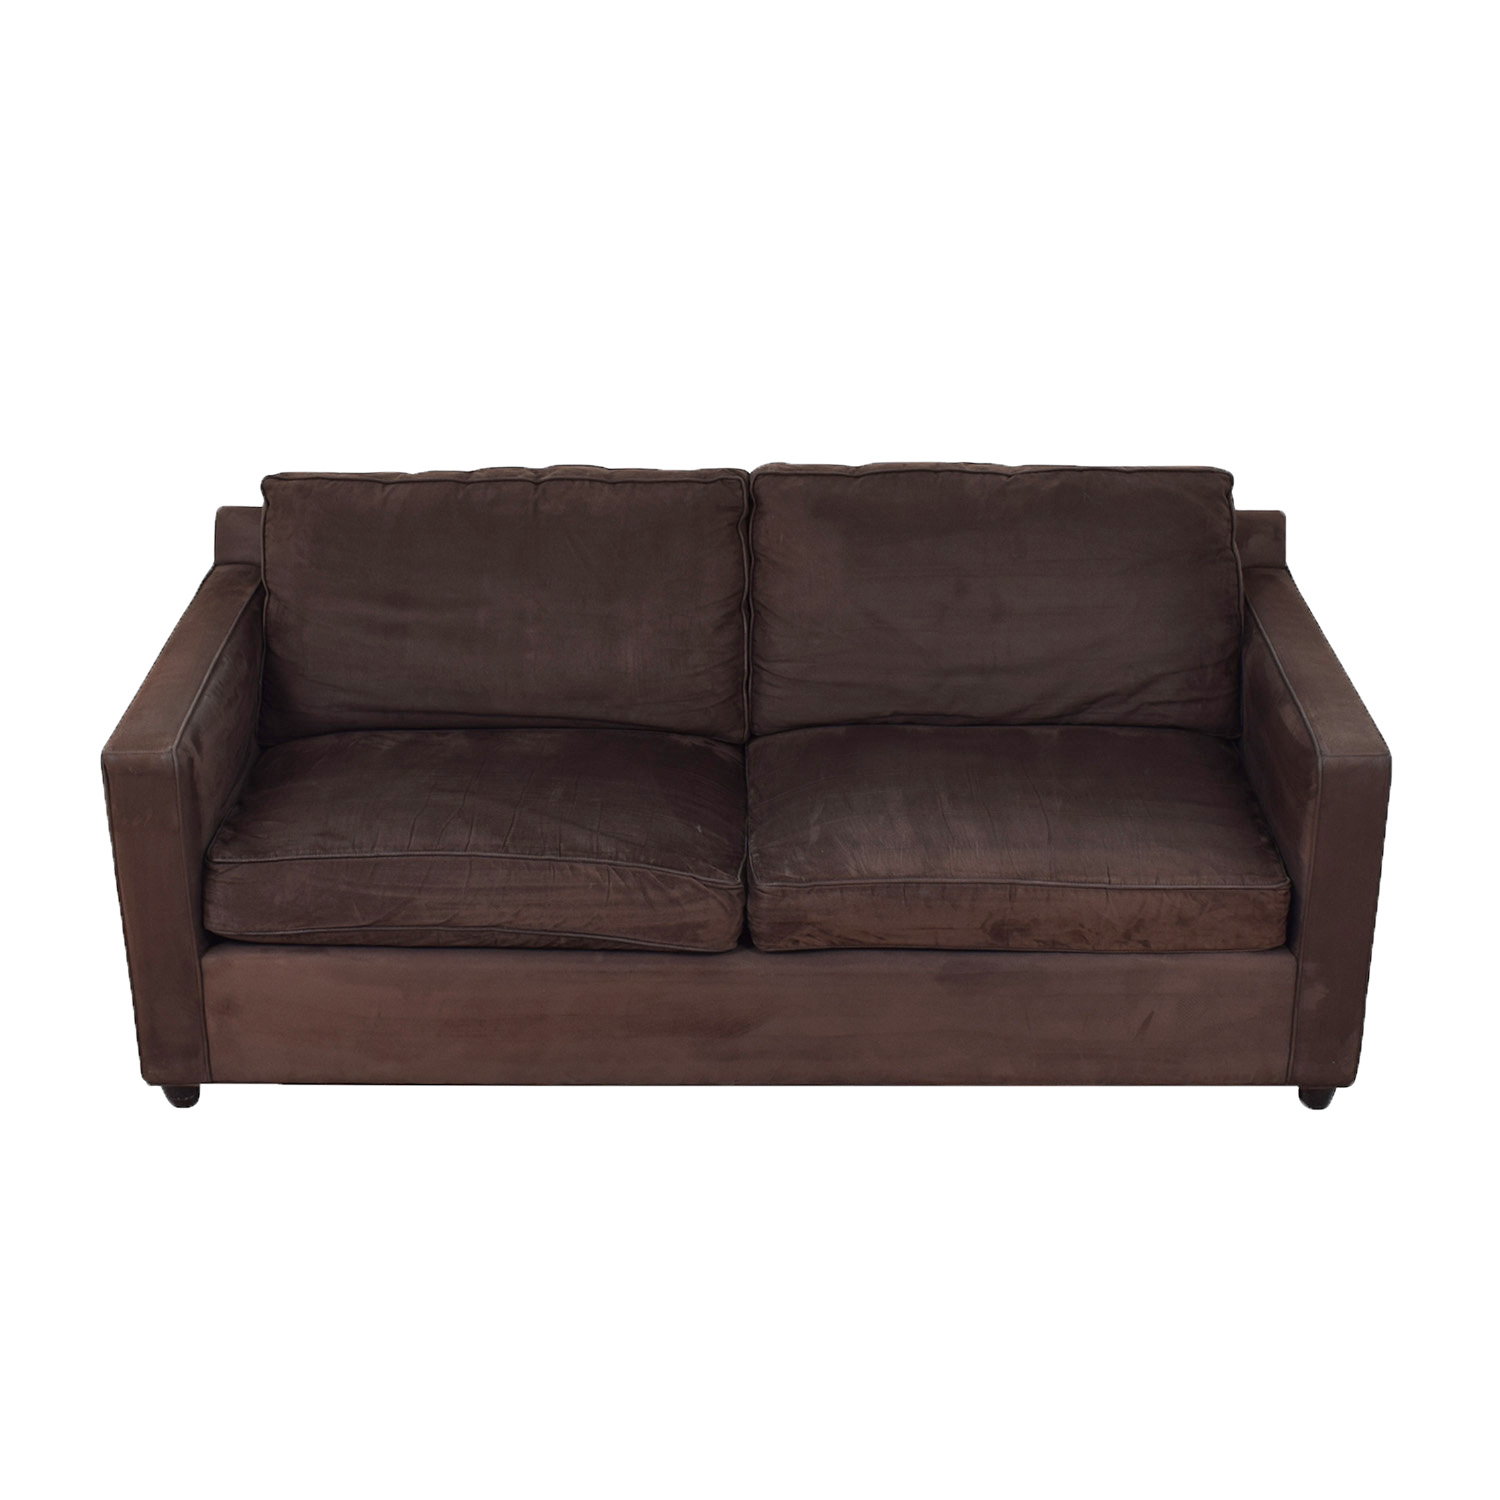 Crate & Barrel Crate & Barrel Two Seat Sofa nyc